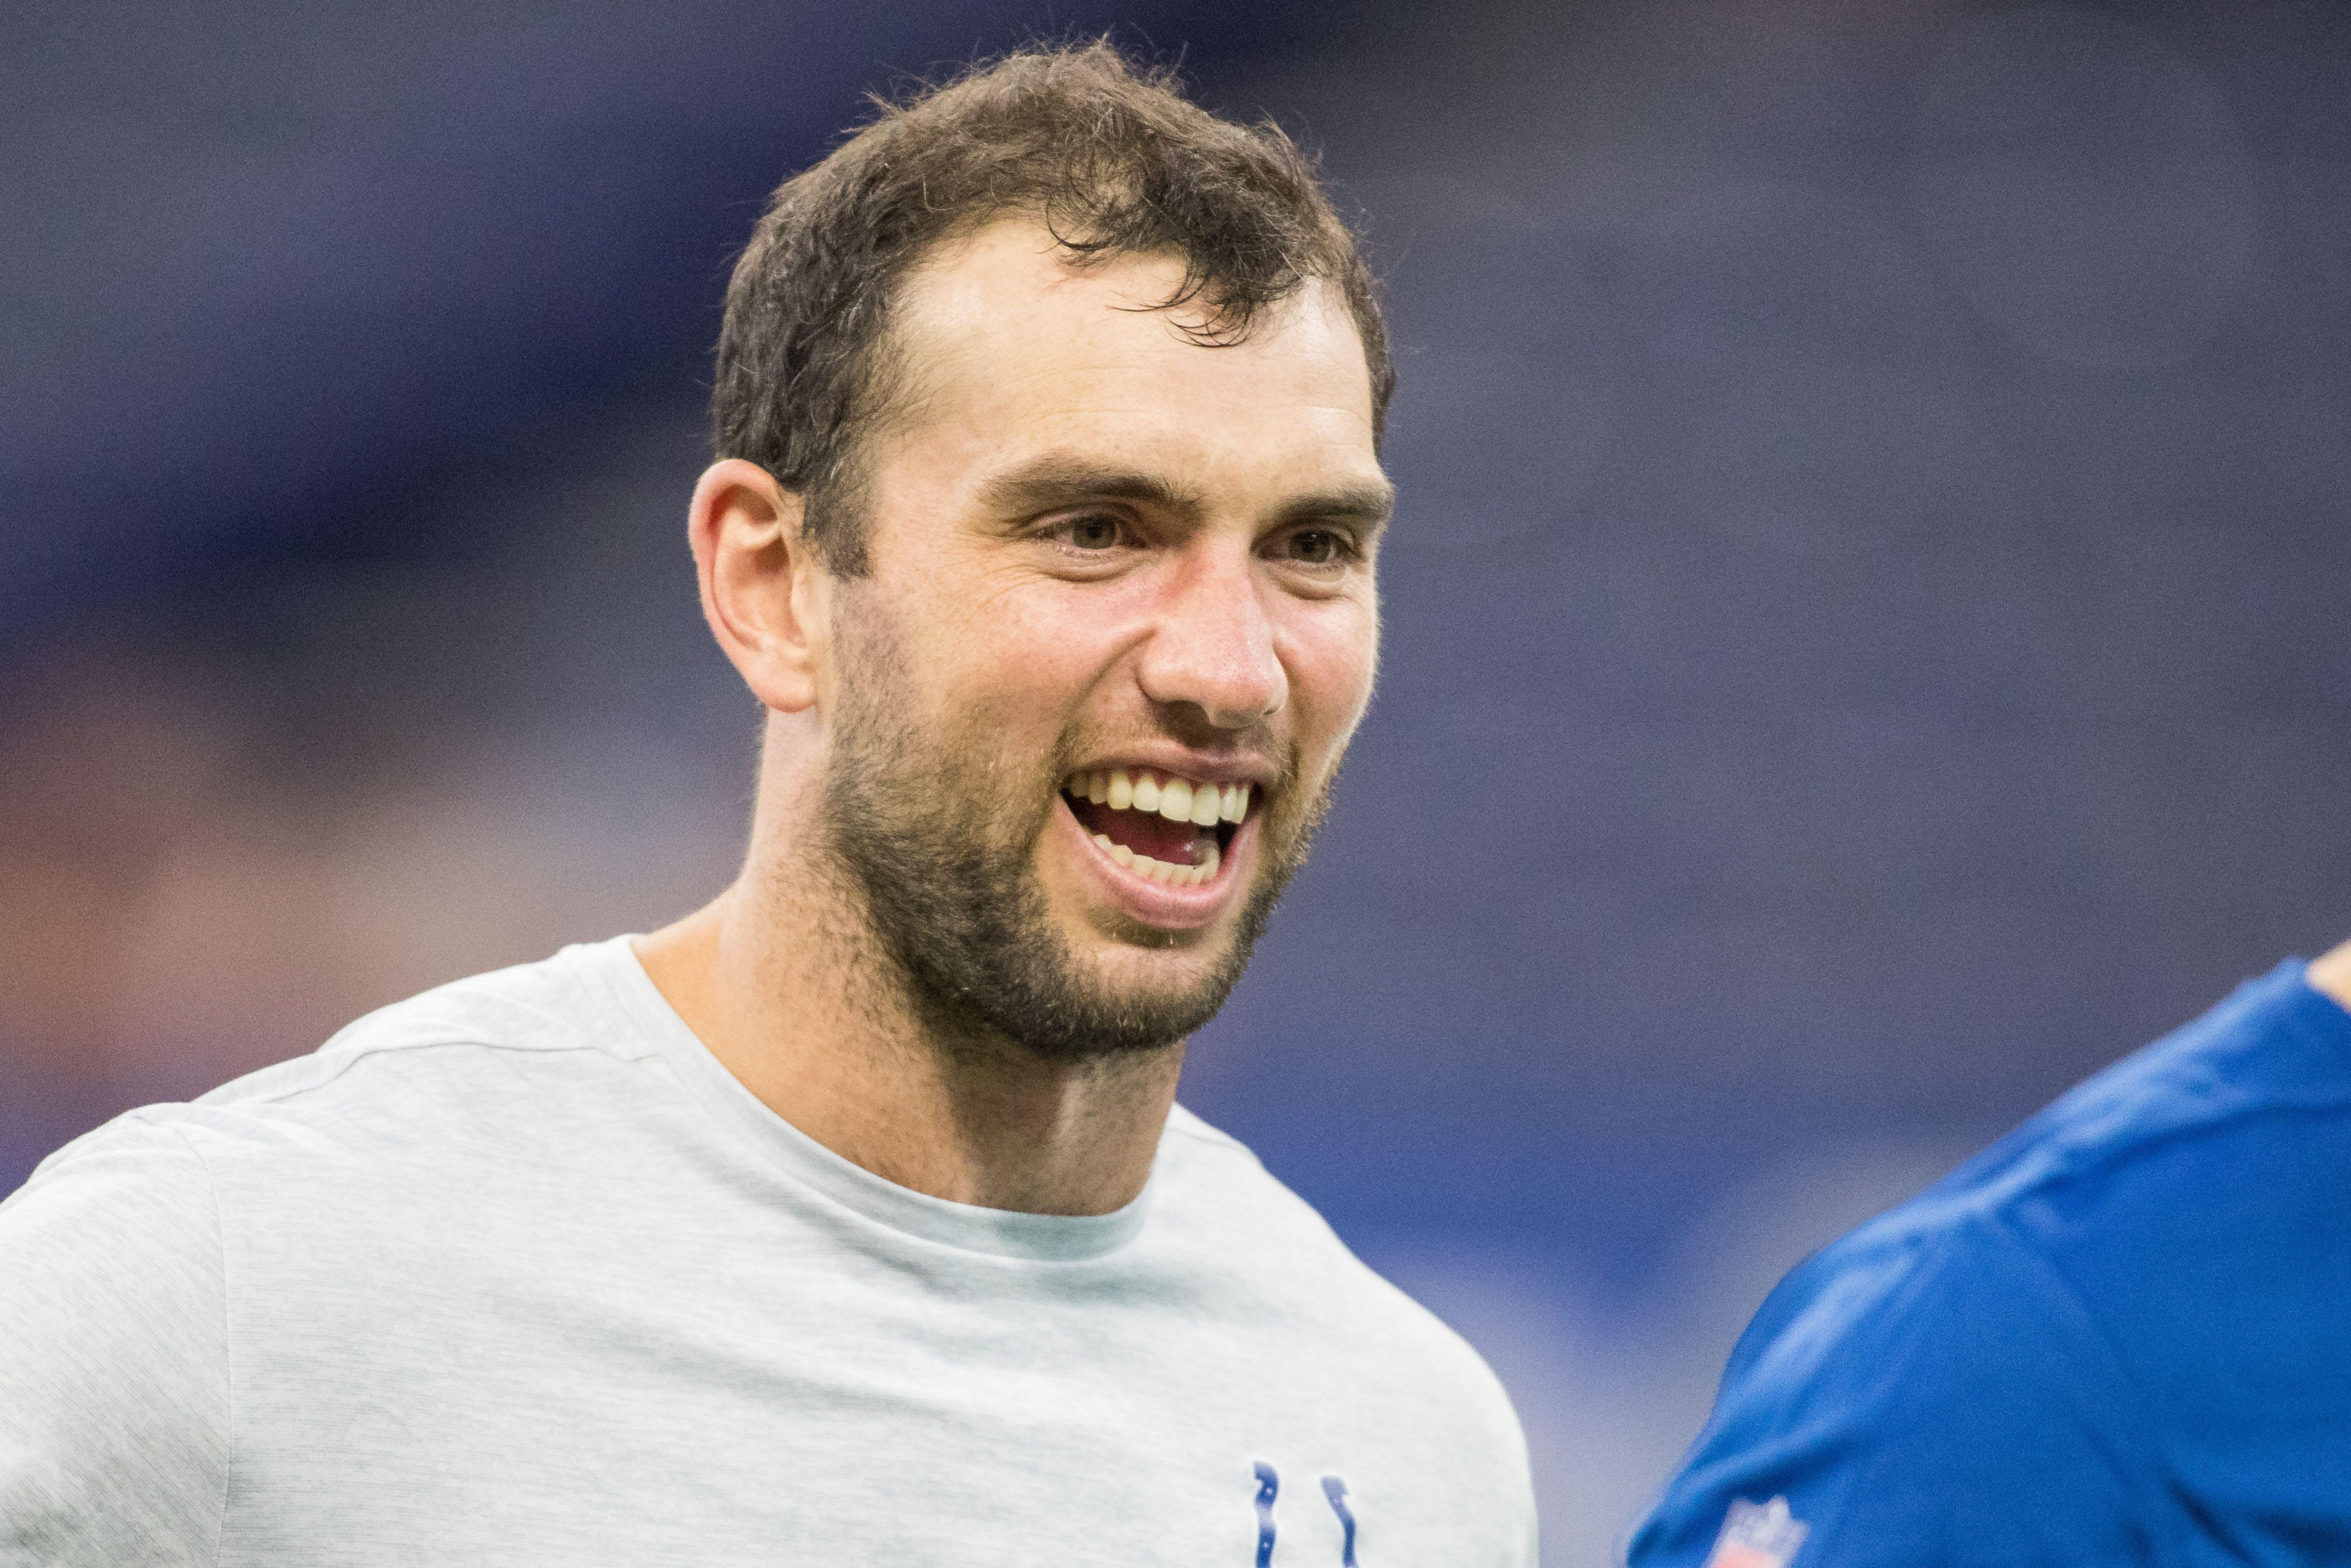 Opinion: Andrew Luck is not coming back to the NFL because he doesn't need it